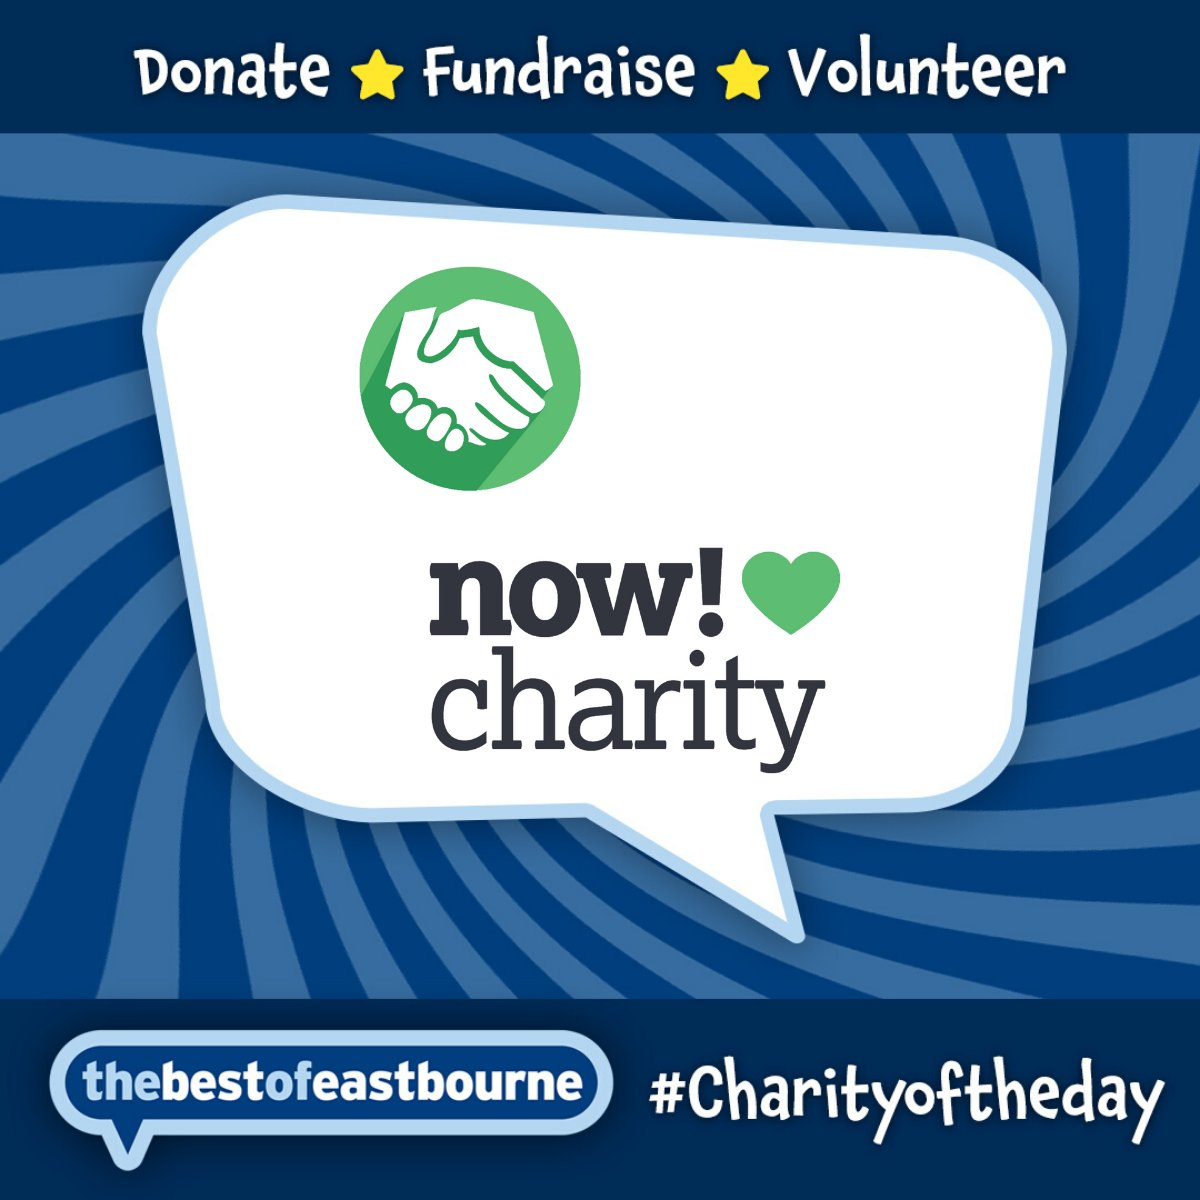 Today our #CharityOfTheDay  is @Now_Charity   https://j.mp/2WOB3dn    Show them support by helping in any way you can but at the very least give them a LIKE and SHARE on their posts!  #BestOfEastbourne  | #BestOfSussex  | #SupportLocal